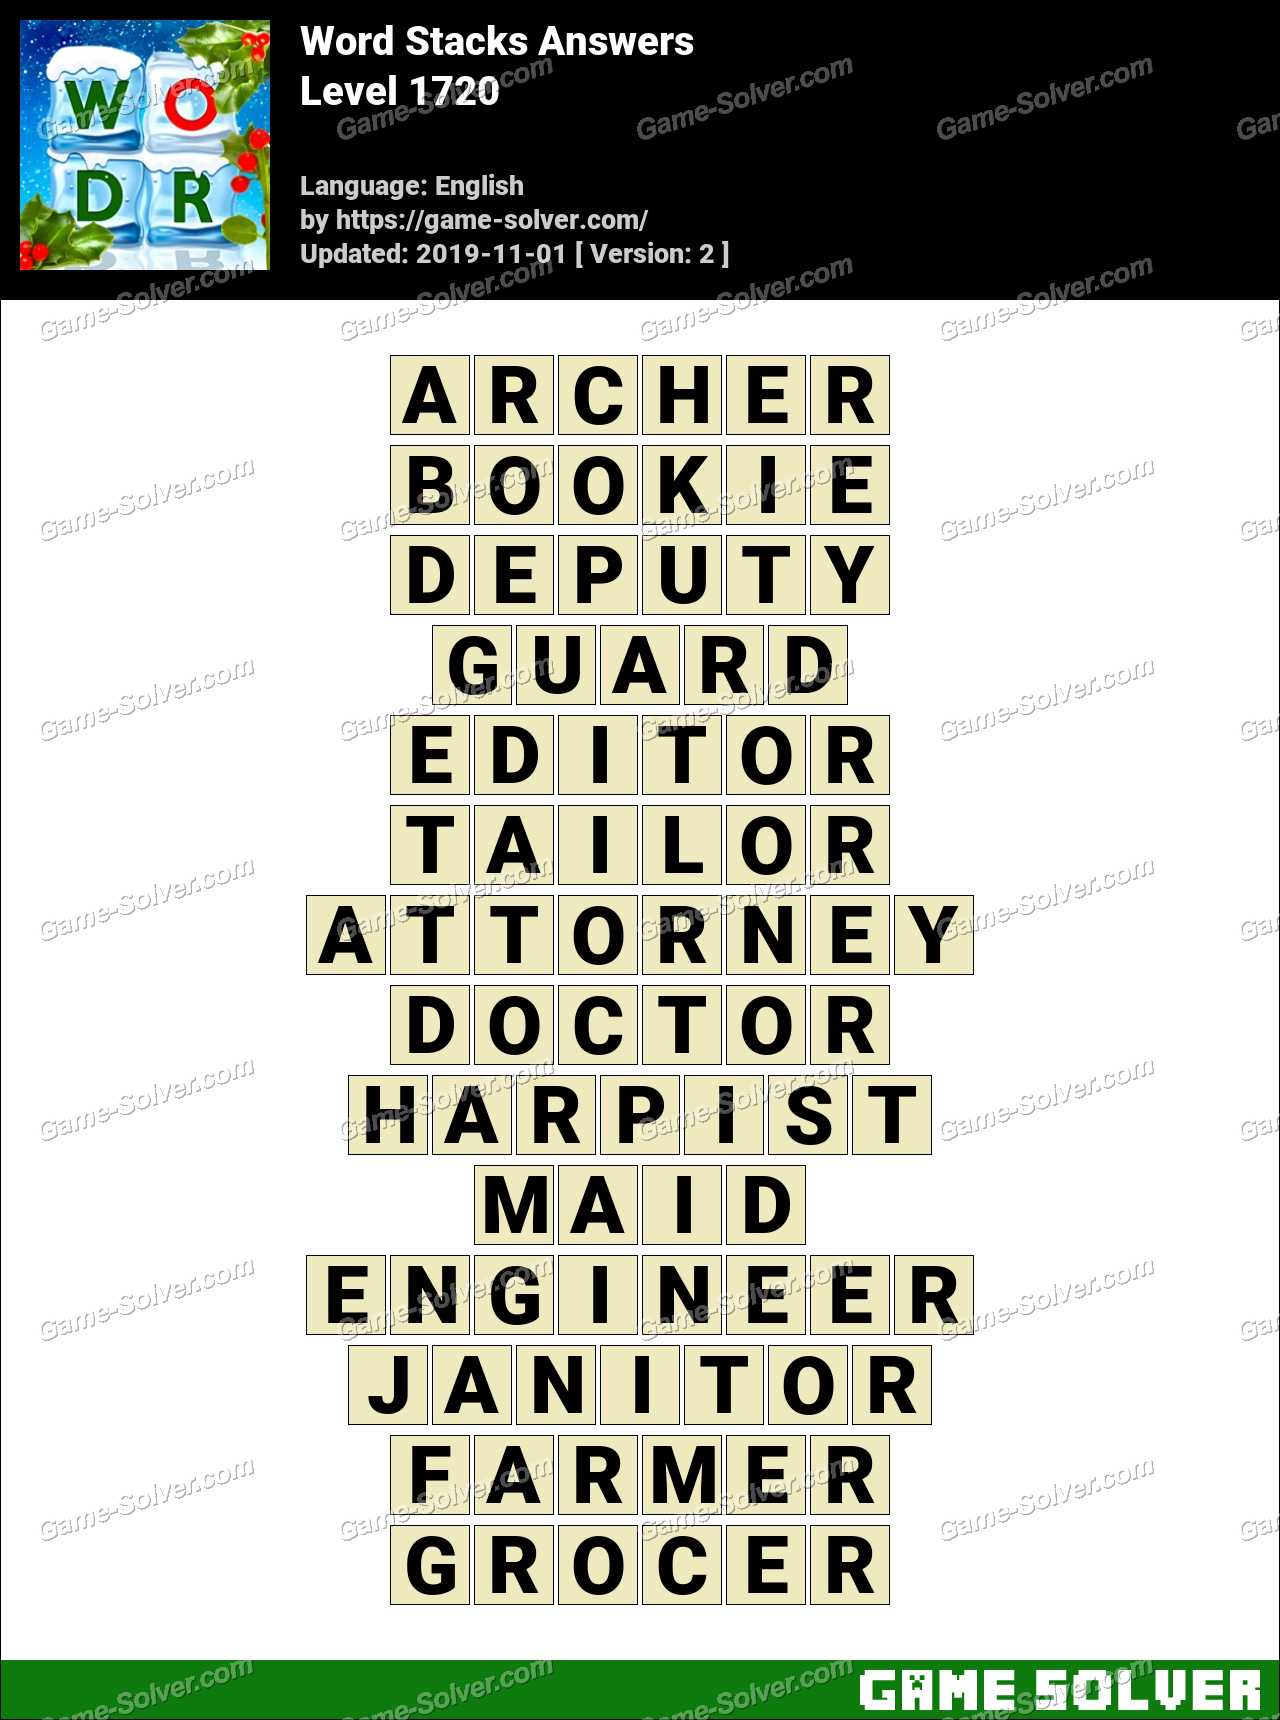 Word Stacks Level 1720 Answers